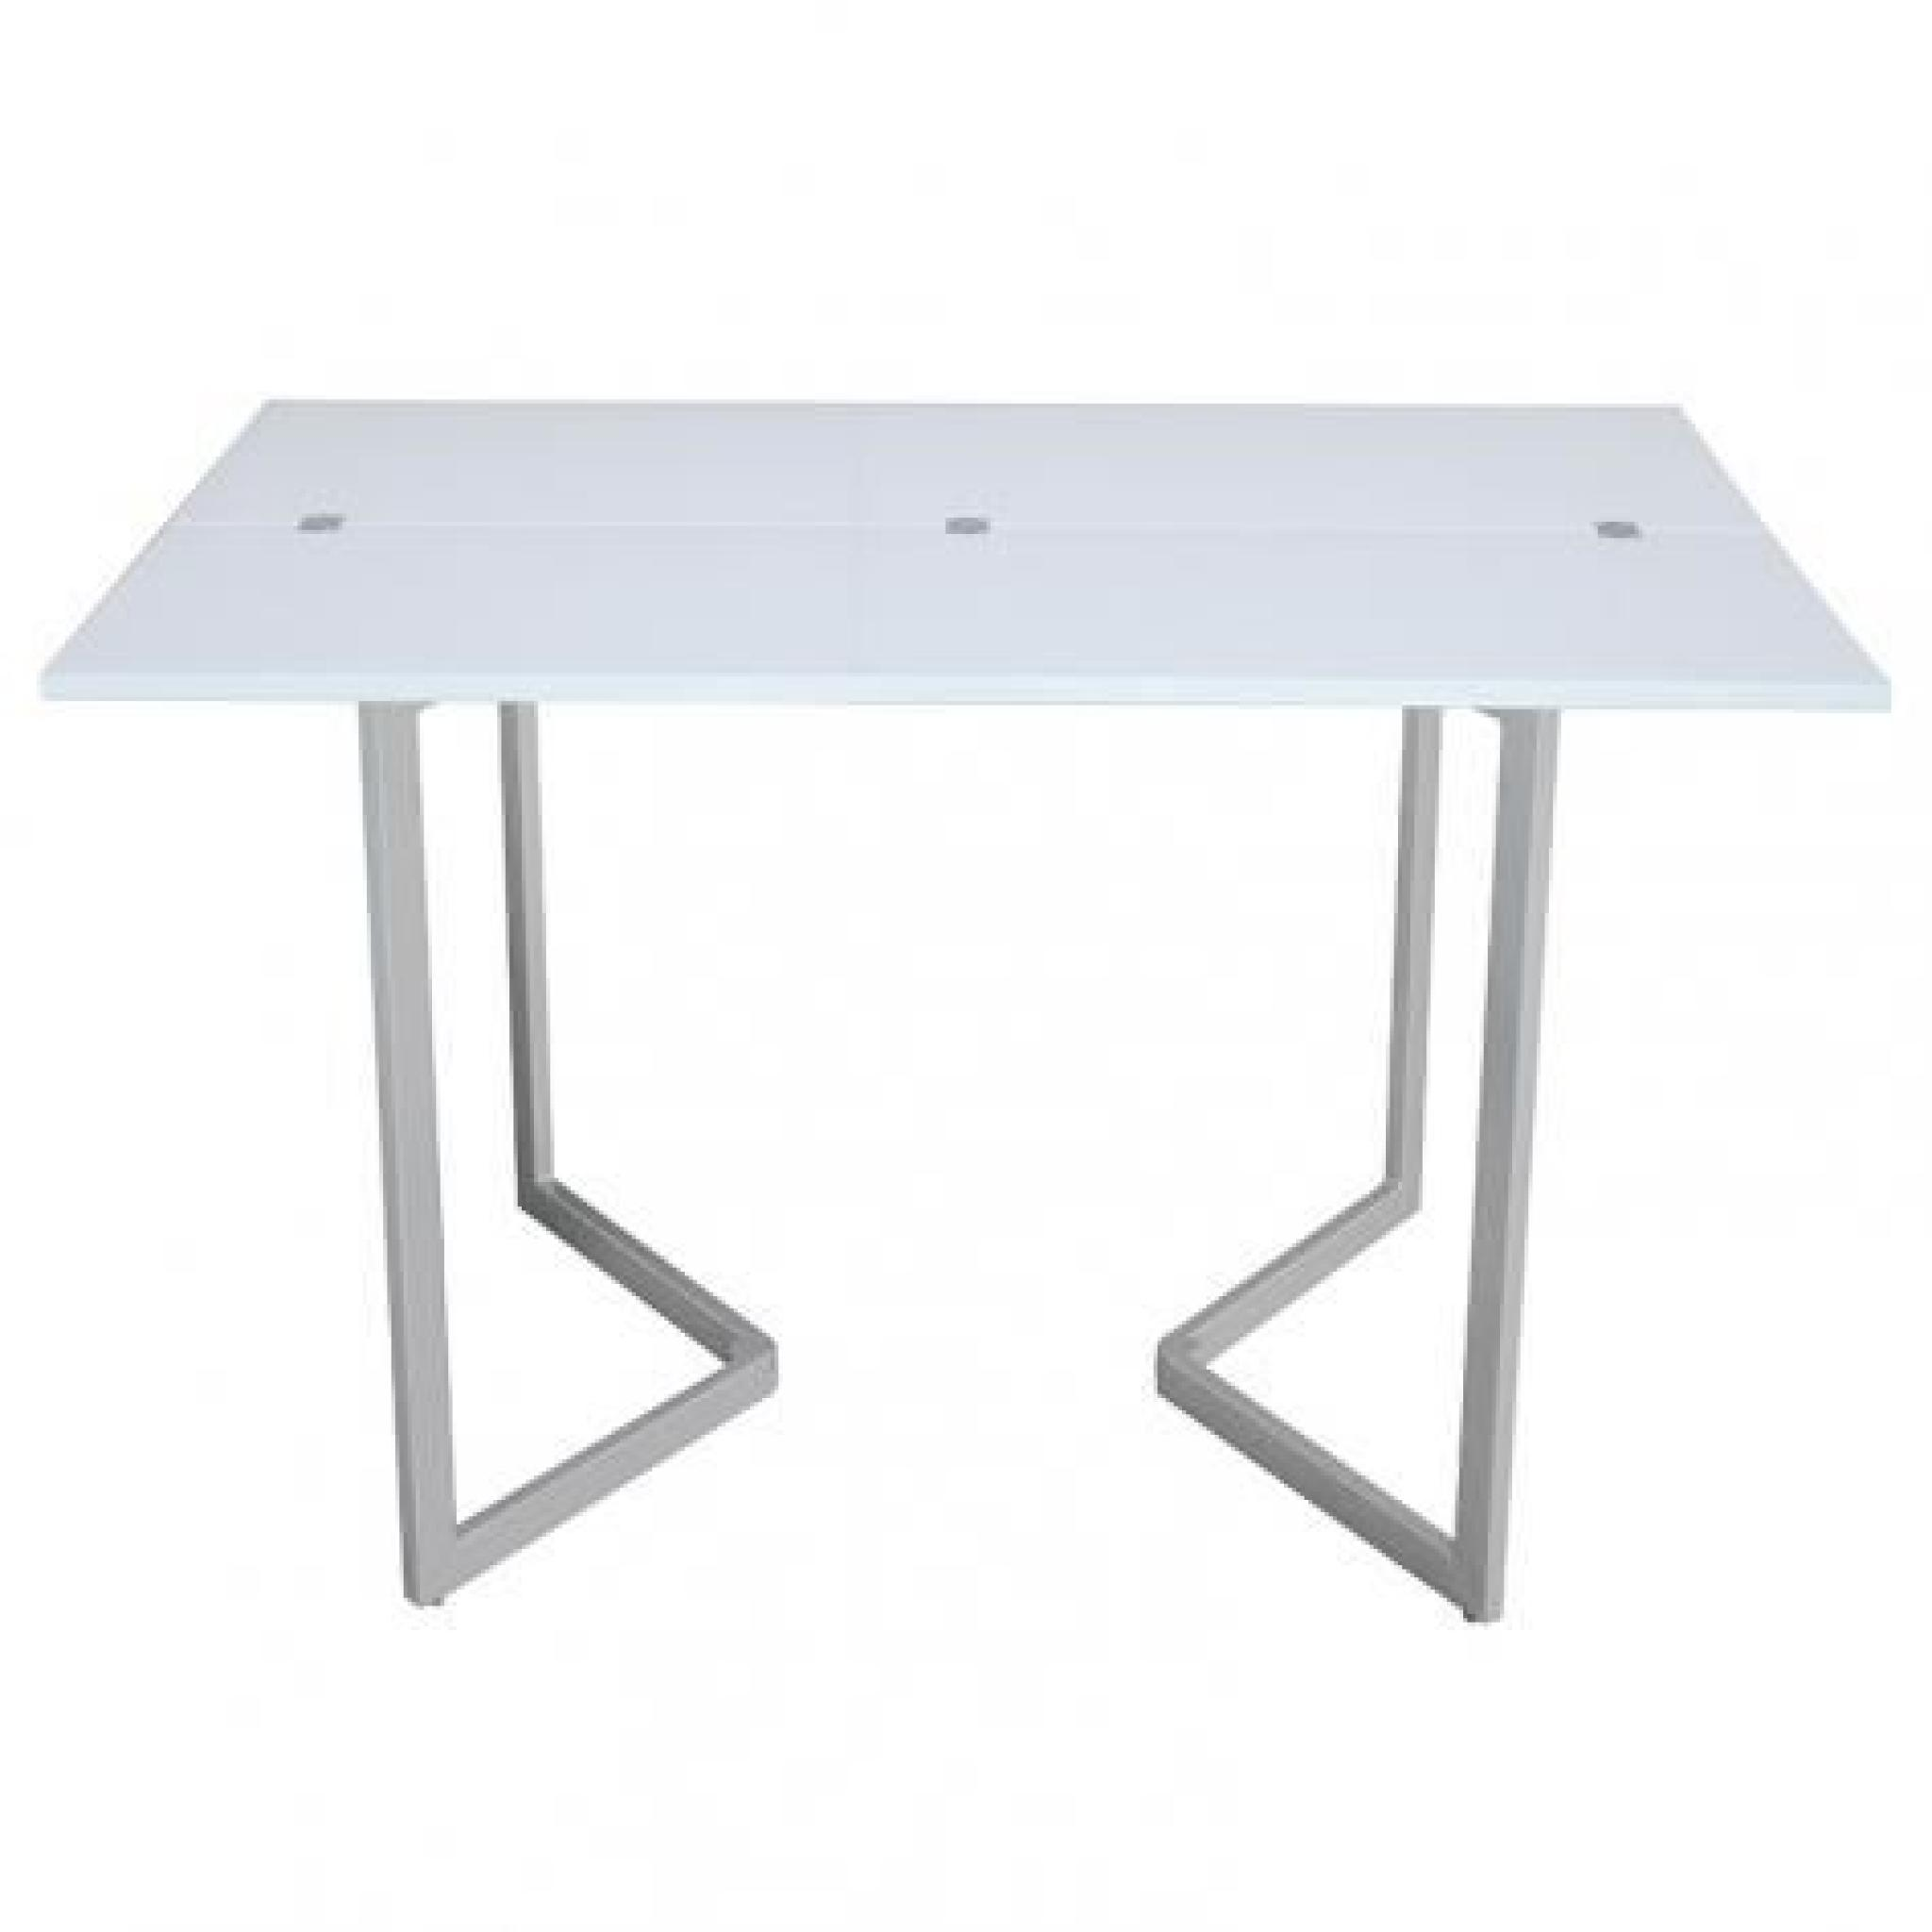 Table console extensible habitat finest table console for Table blanche extensible 12 personnes